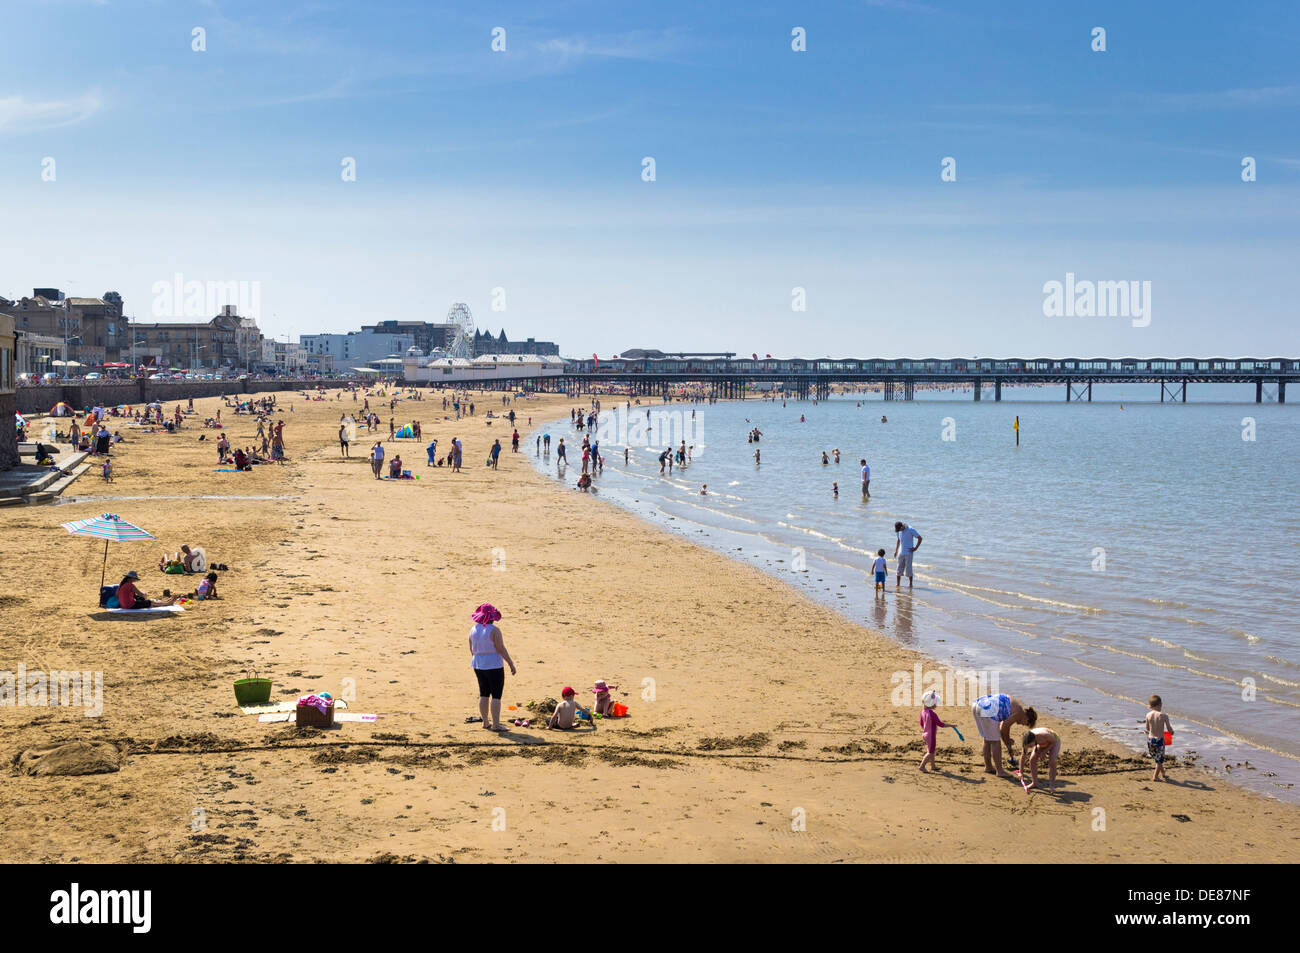 Beach UK - the seaside beach Weston Super Mare, Somerset, UK - Stock Image